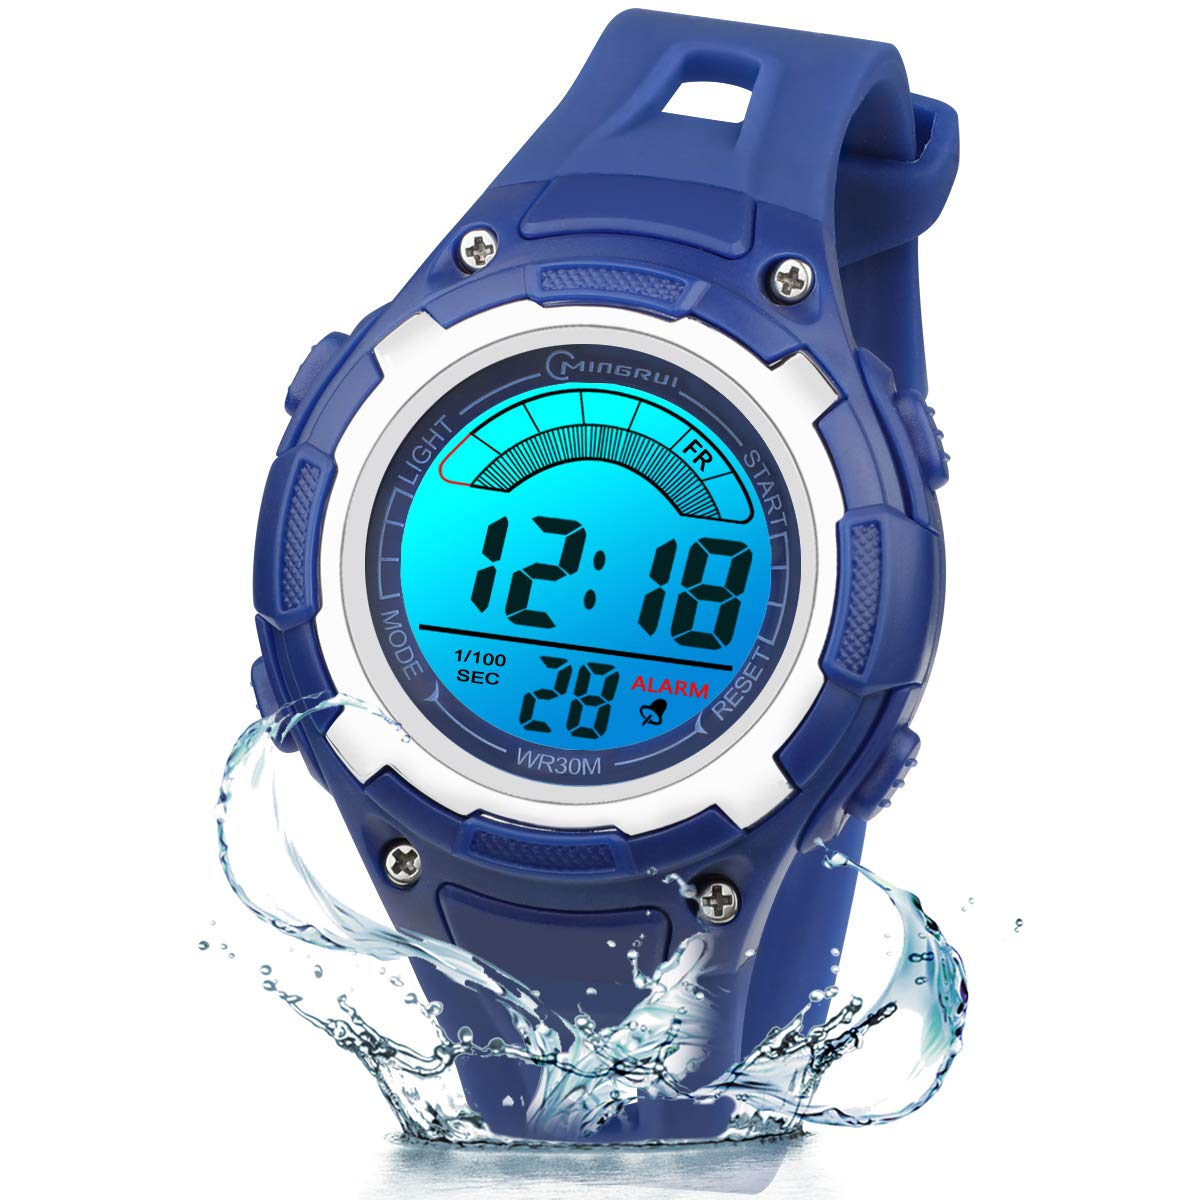 Kids Digital Watches for Boys Girls,7Colors Led Light Outdoor Sports Waterproof Multi Function Wristwatch with Alarm/Timer/Dual Time Zone,Dial Strap Detachable Fun Children's Watch (Dark Blue 59) by PINGHE